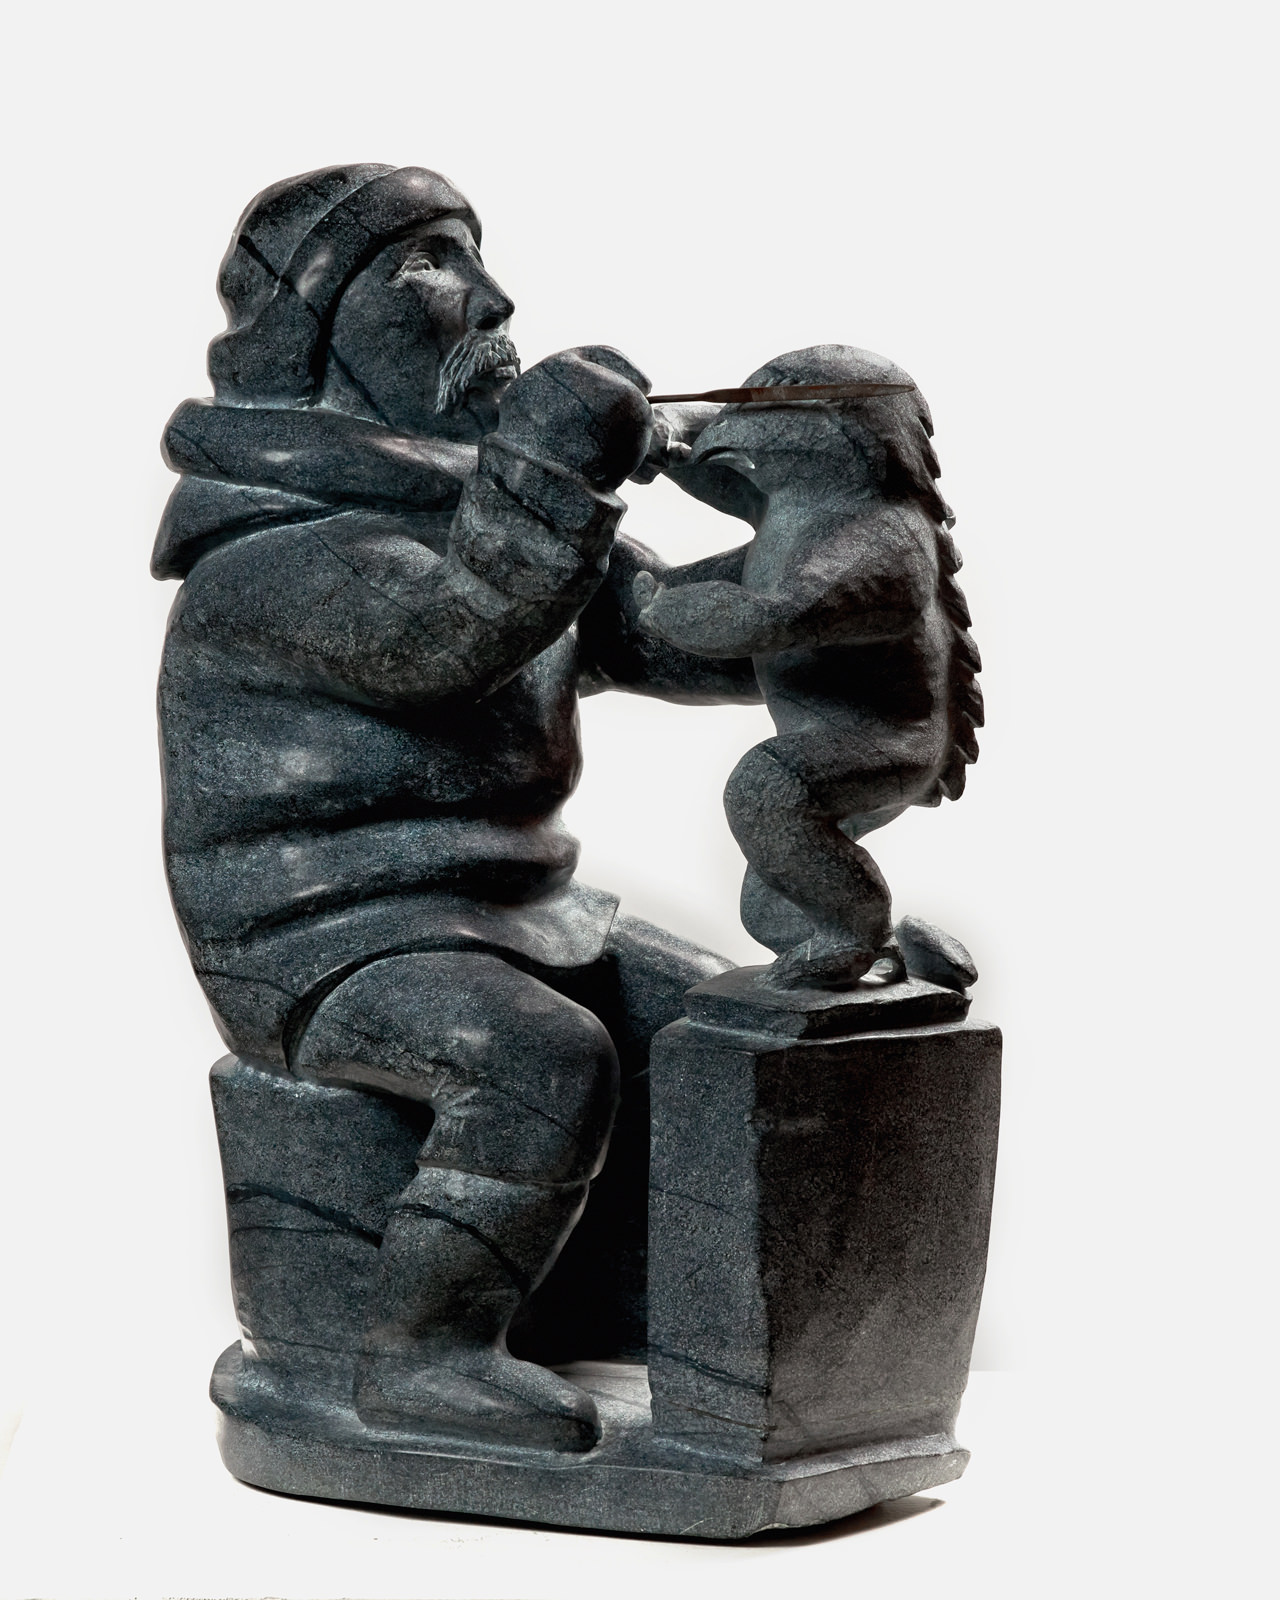 Kiawak Ashoona, Inuit Carver, My Father (2002) Goota Ashoona (1967 - ) Soapstone Collection: Canada Council Art Bank